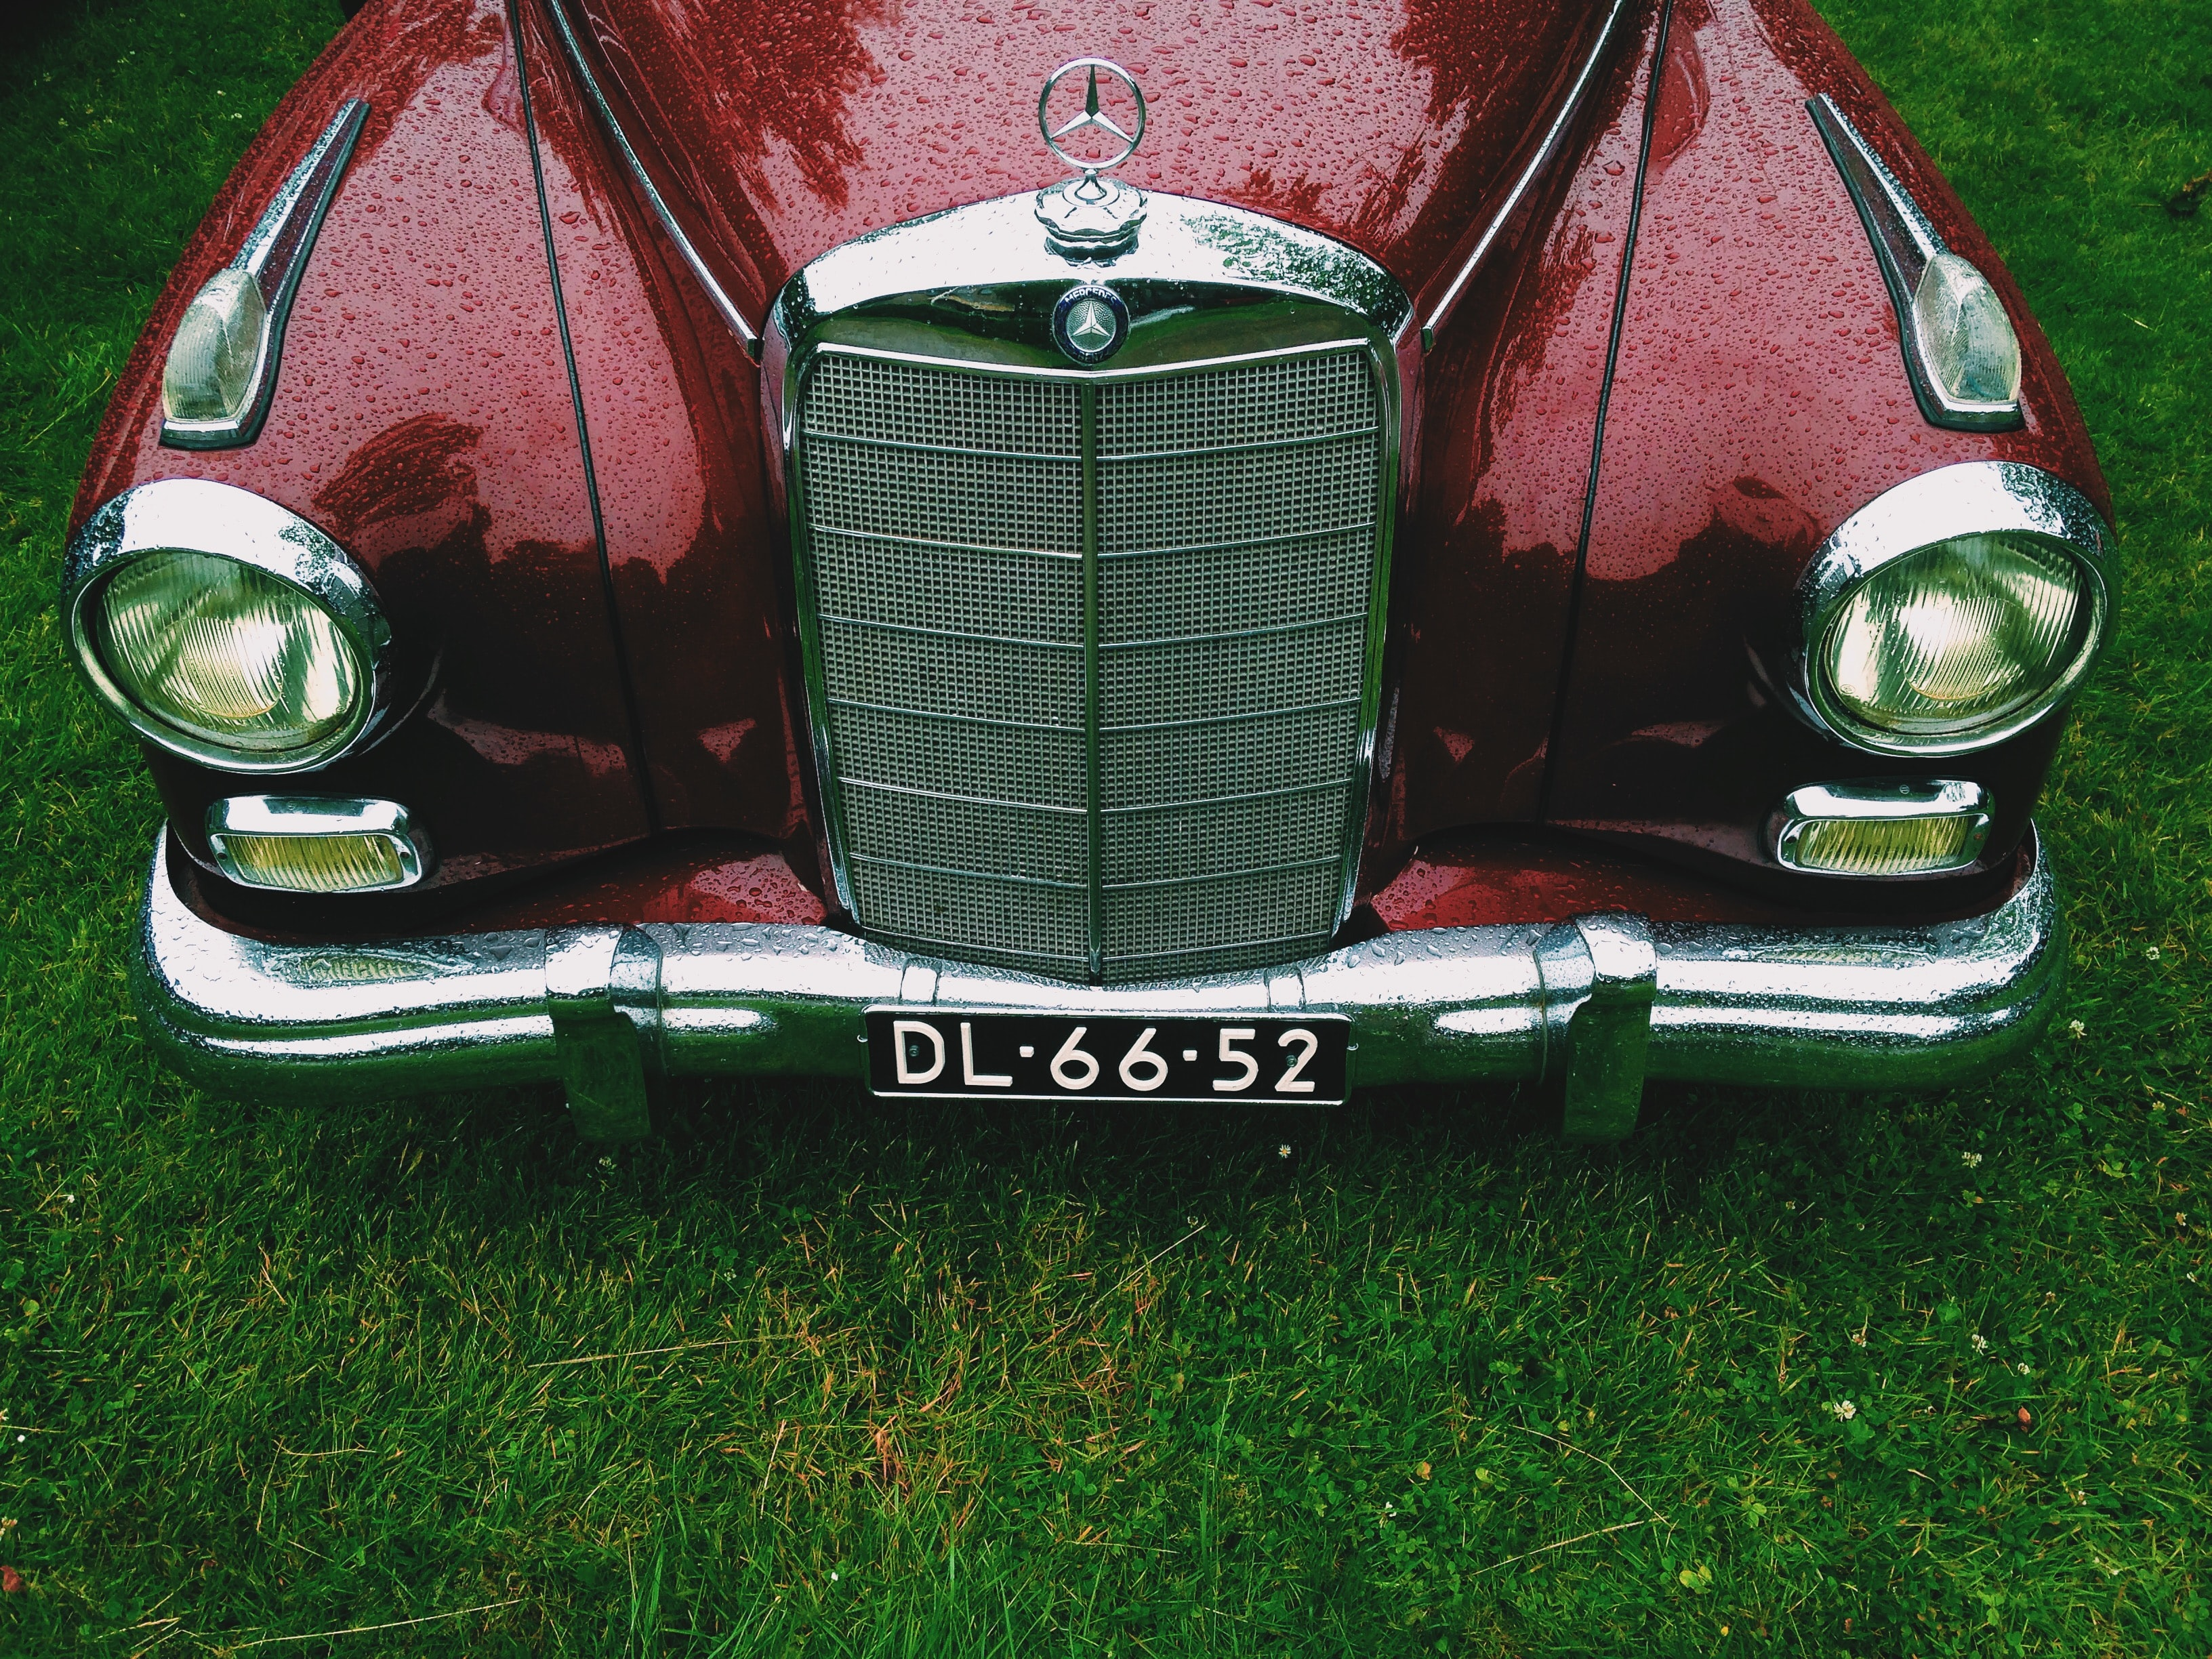 Front view of a vintage maroon-colored Mercedes-Benz.